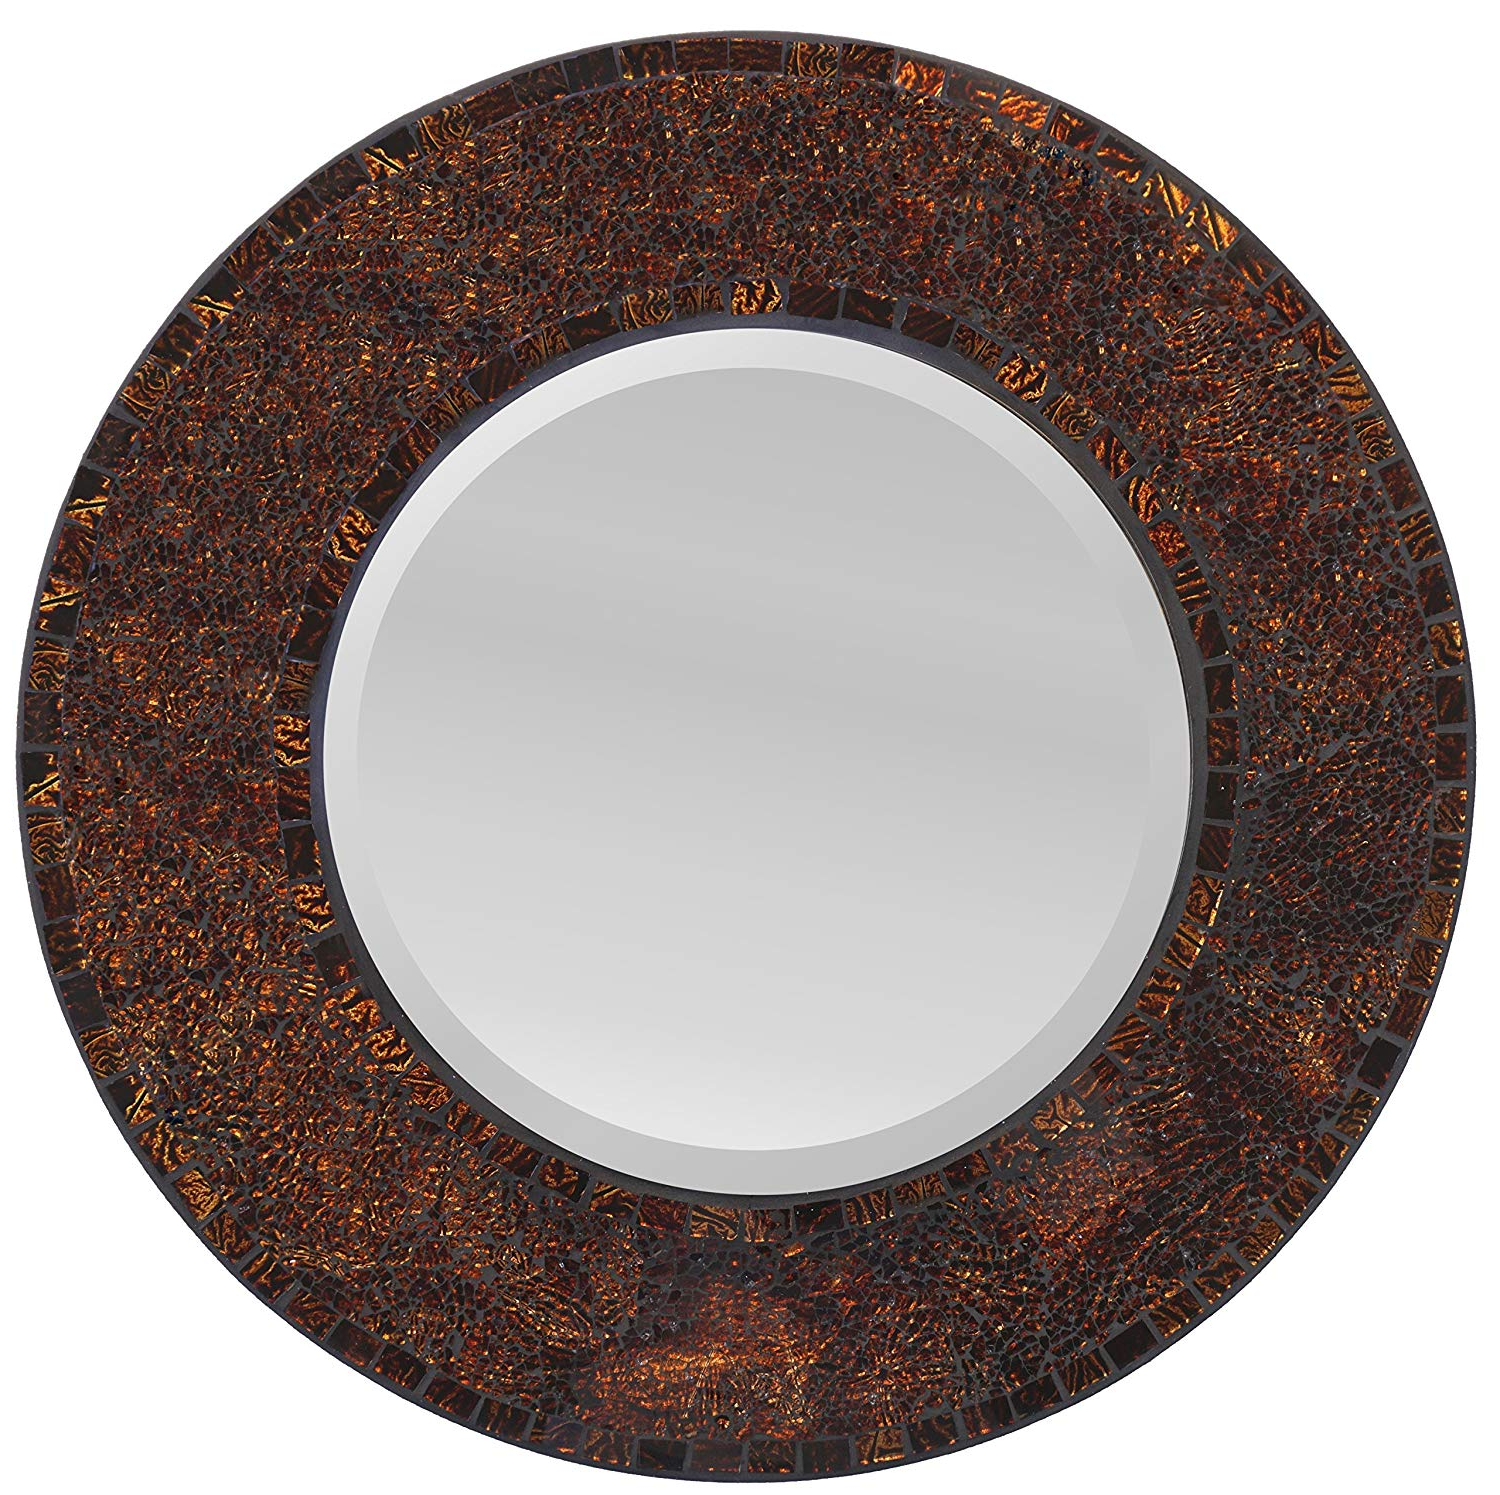 Round Mosaic Wall Mirrors Regarding Most Current Lulu Decor, Baltic Crush Amber Mosaic Wall Mirror, Round Decorative Mirror For Living Room & Office Space (lp71m) (View 7 of 20)